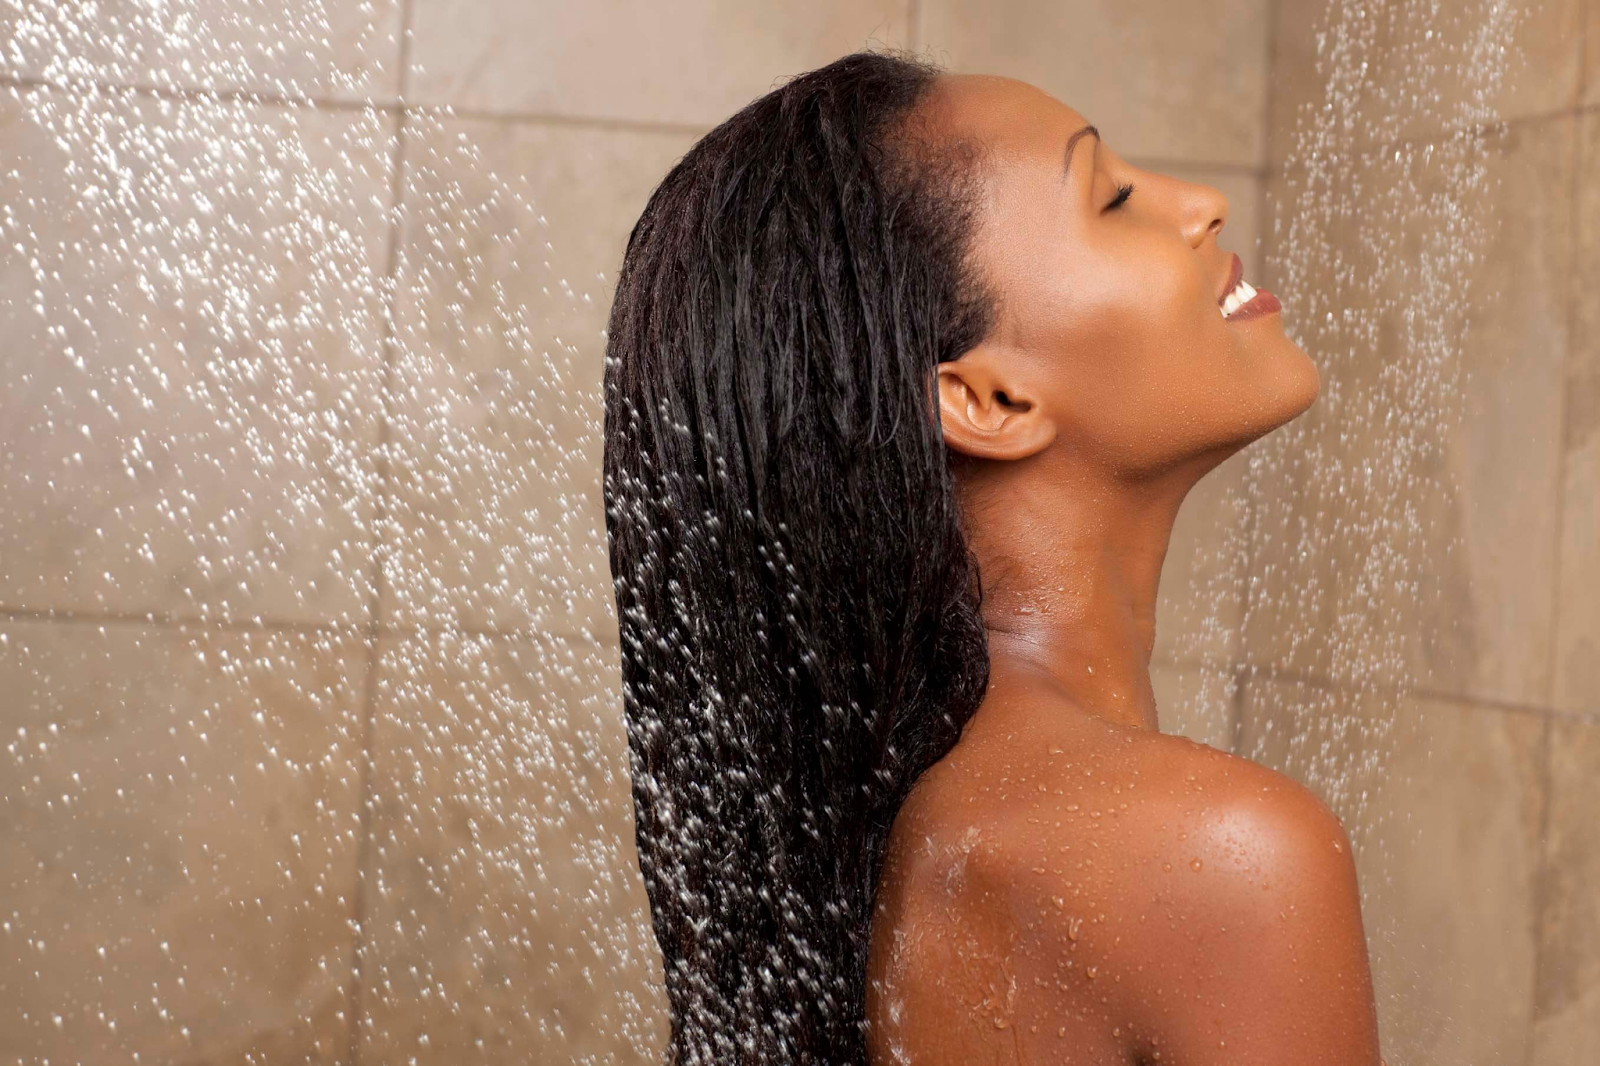 Wash your hair twice before getting the blowout